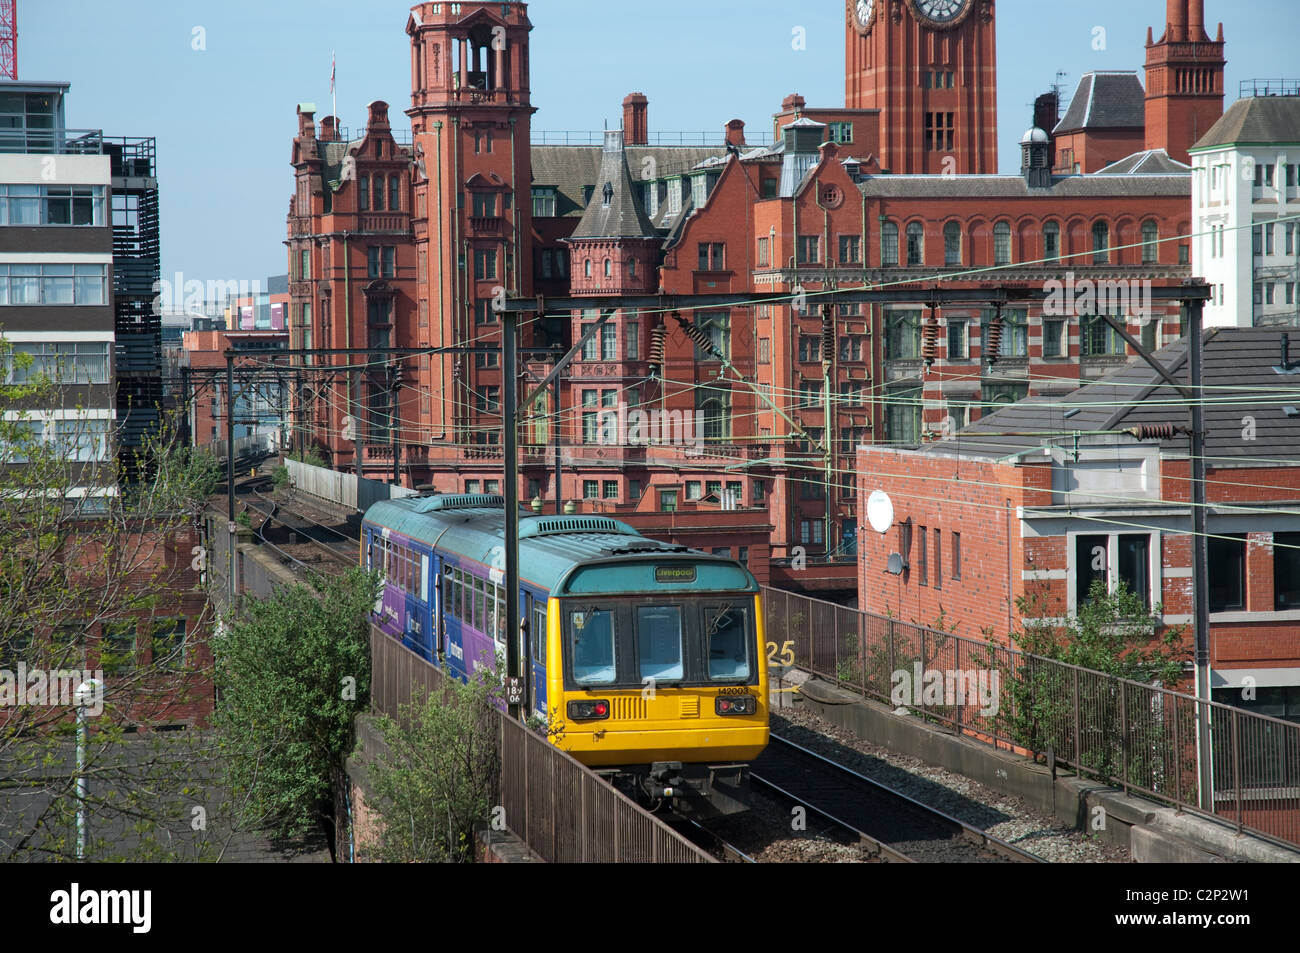 Northern Rail train in Manchester city centre. - Stock Image